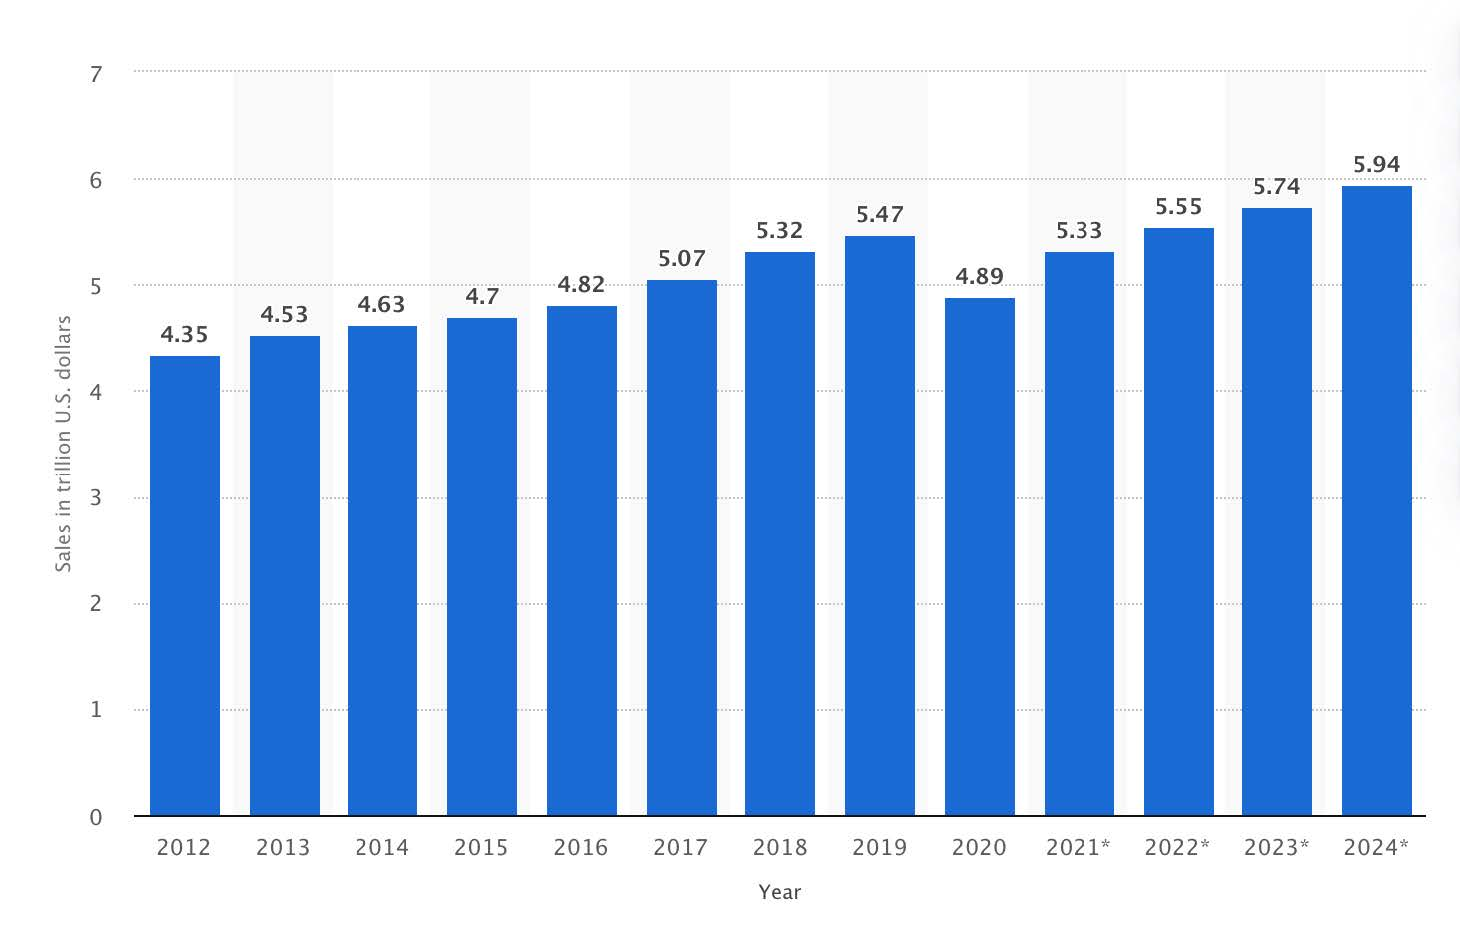 The biggest change in retail in terms of revenue came in 2020. Covid-19.